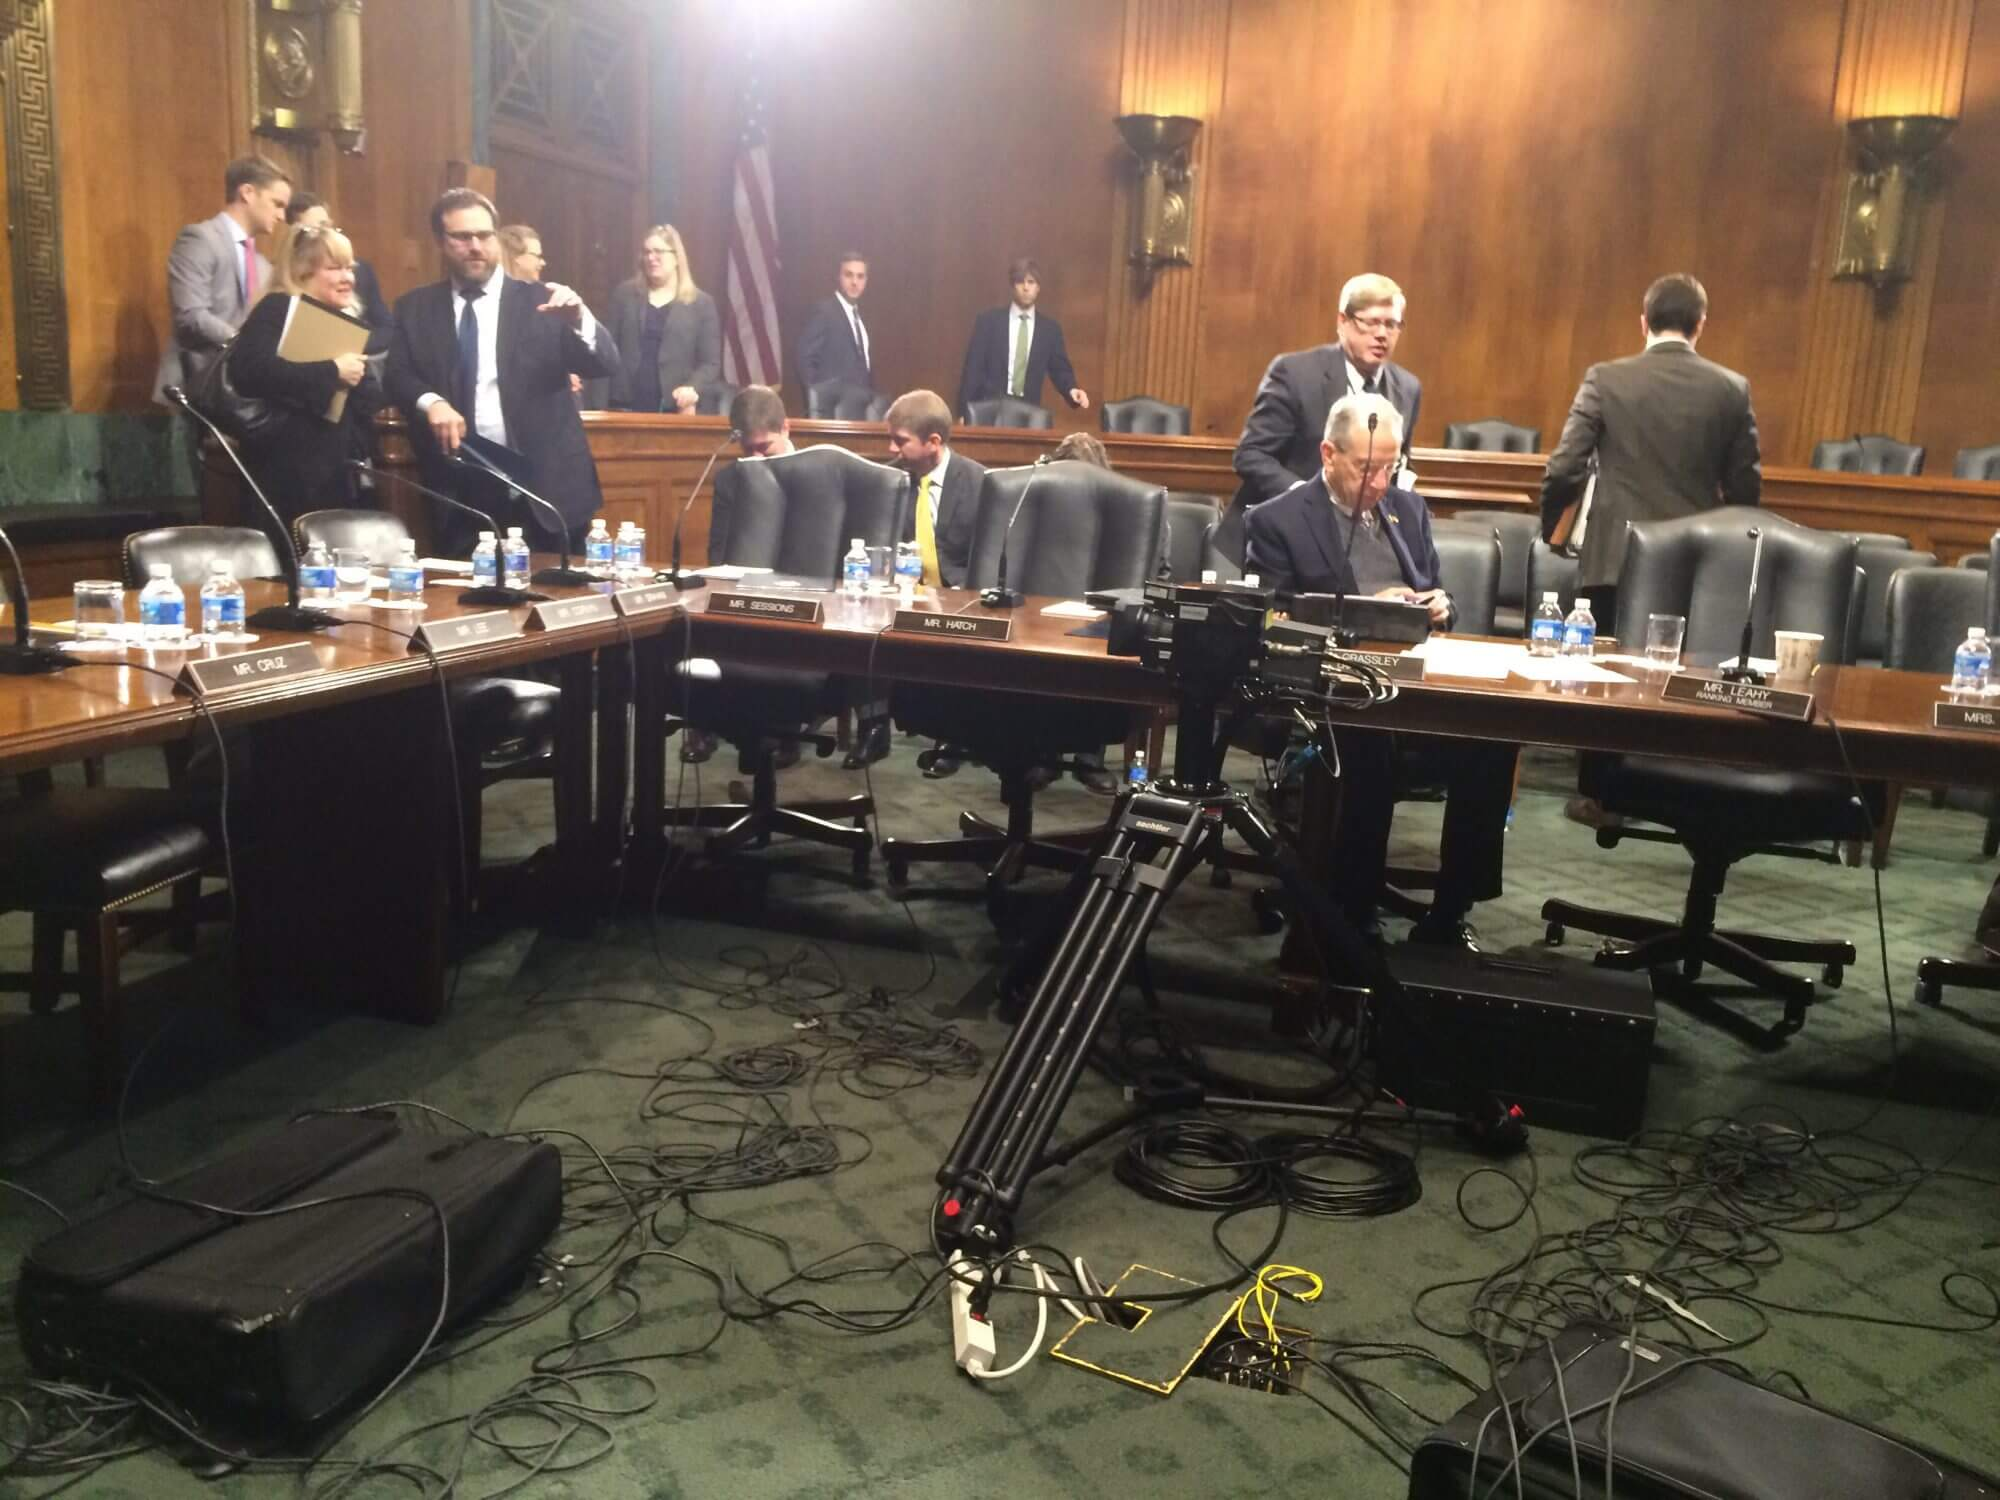 Company trade secrets could be better protected under Senate Judiciary committee bill